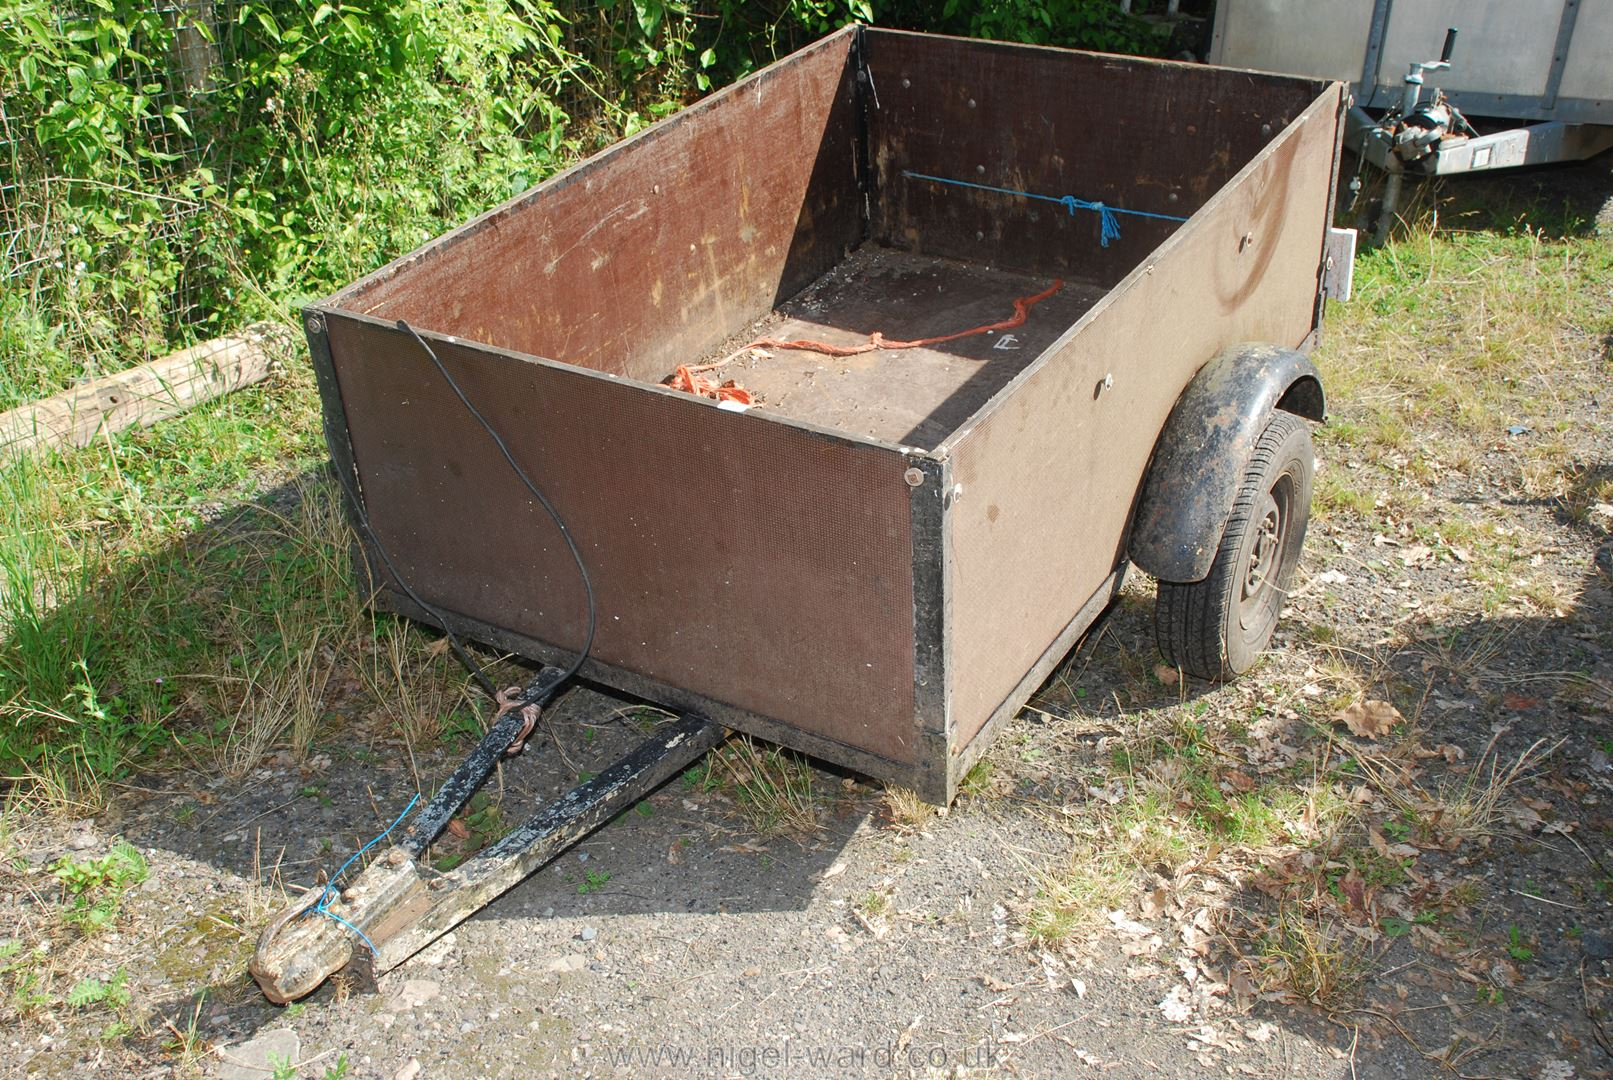 Small wooden trailer with tail board, 64'' x 42'' x 21'' high.